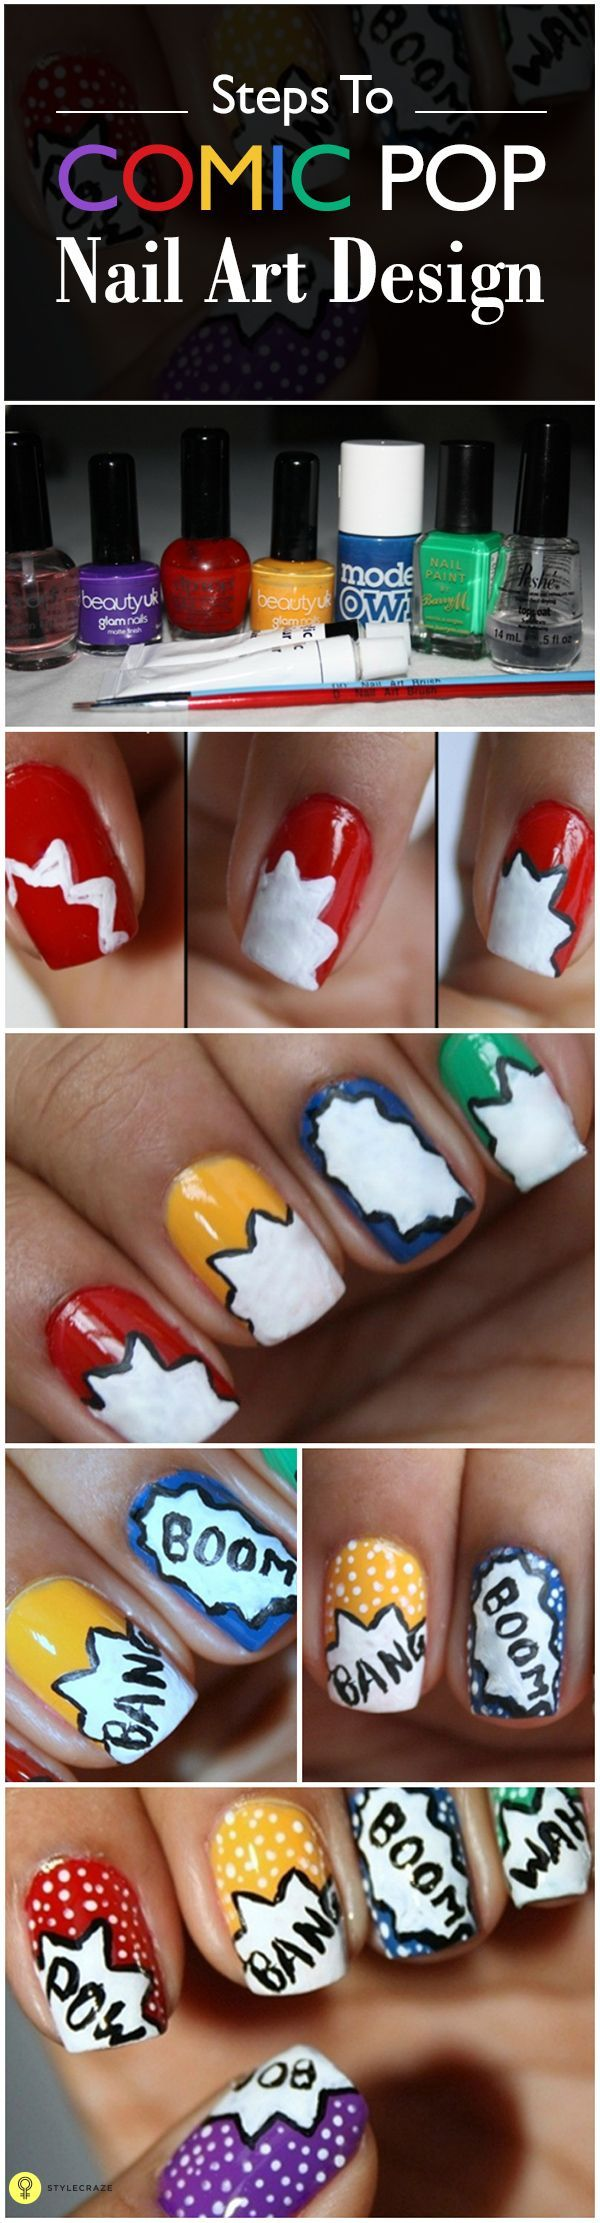 The 25 best simple nail art designs ideas on pinterest simple the 25 best simple nail art designs ideas on pinterest simple nail arts diy nails and diy nails art design prinsesfo Gallery